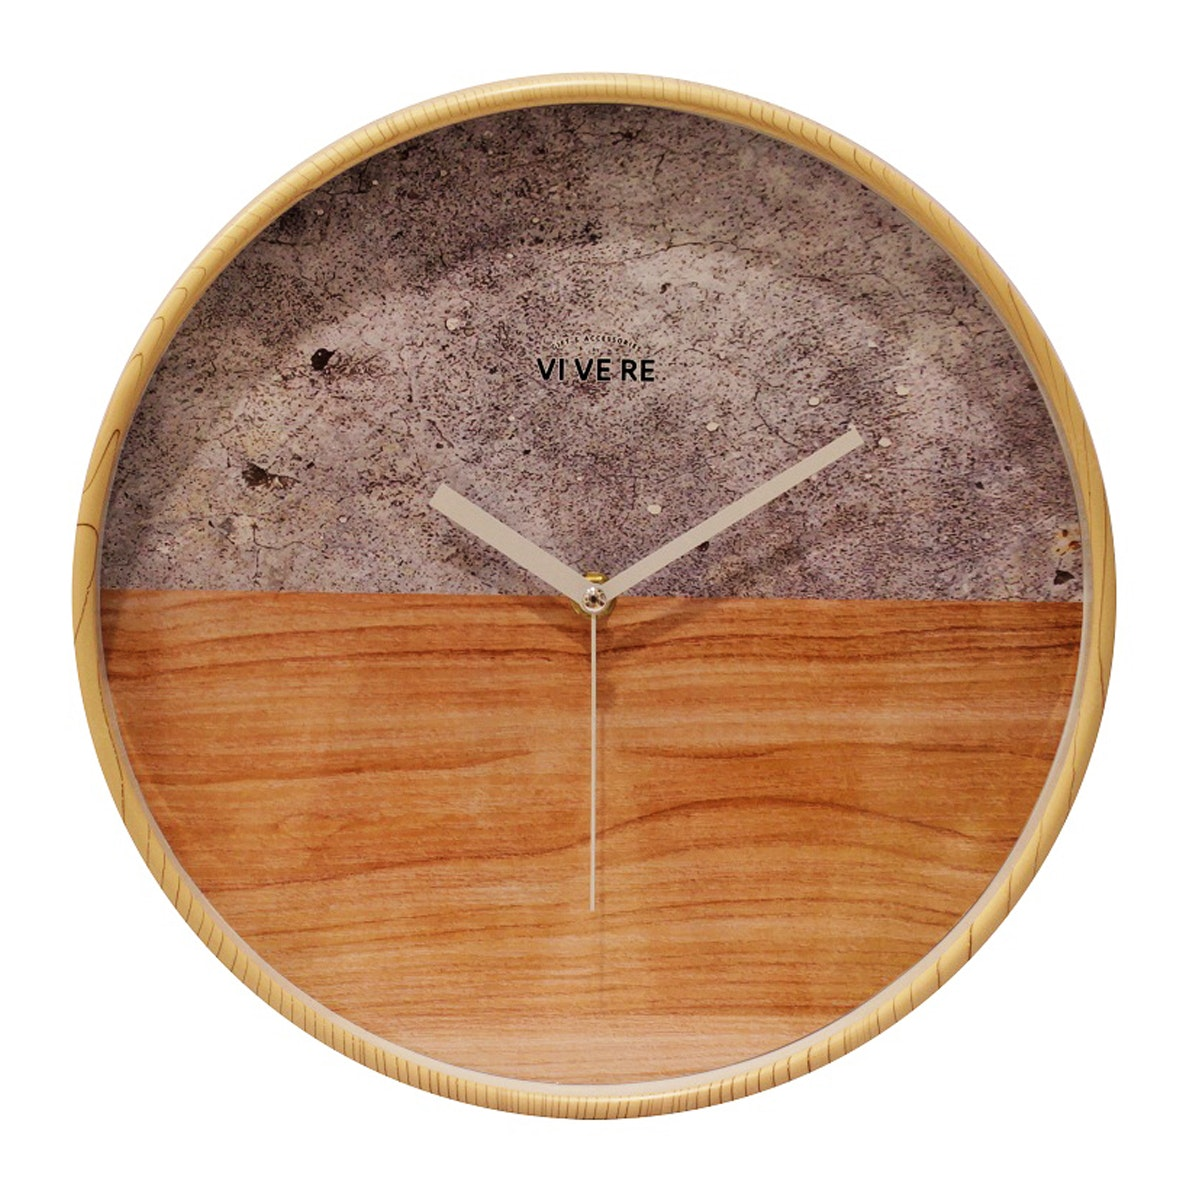 Vivere Wall Clock Stone Wood Gray Brown